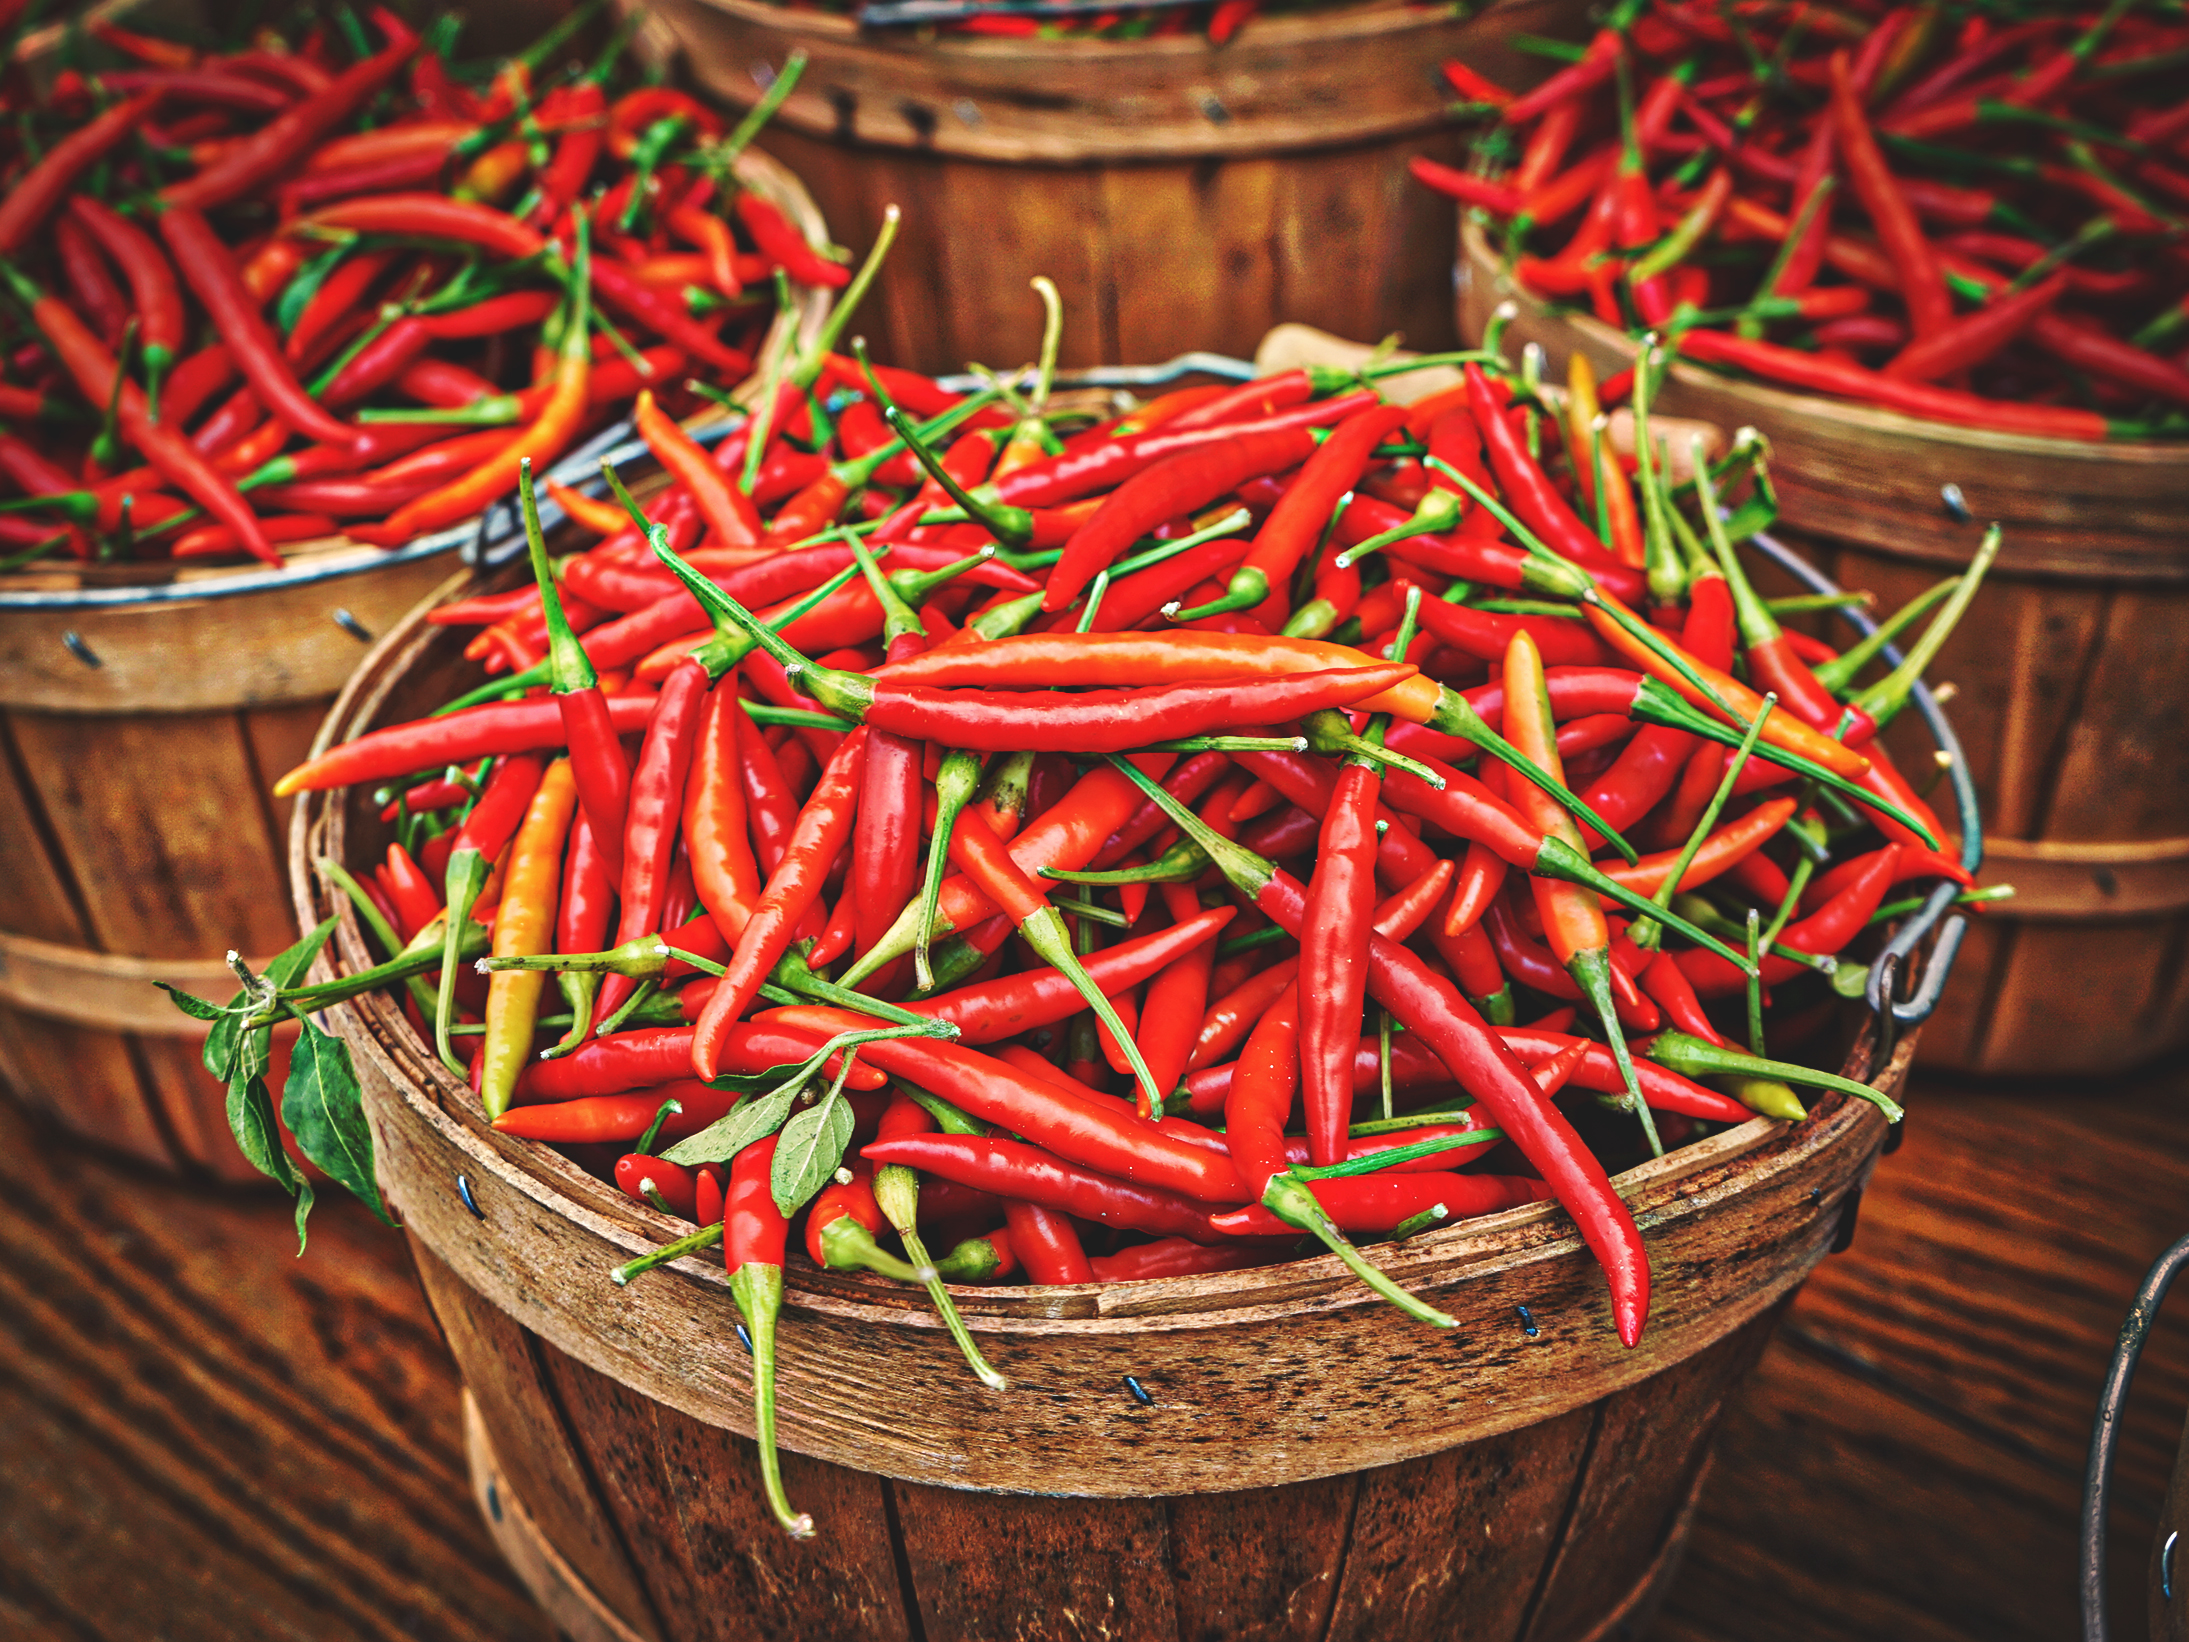 Chile peppers in a barrel